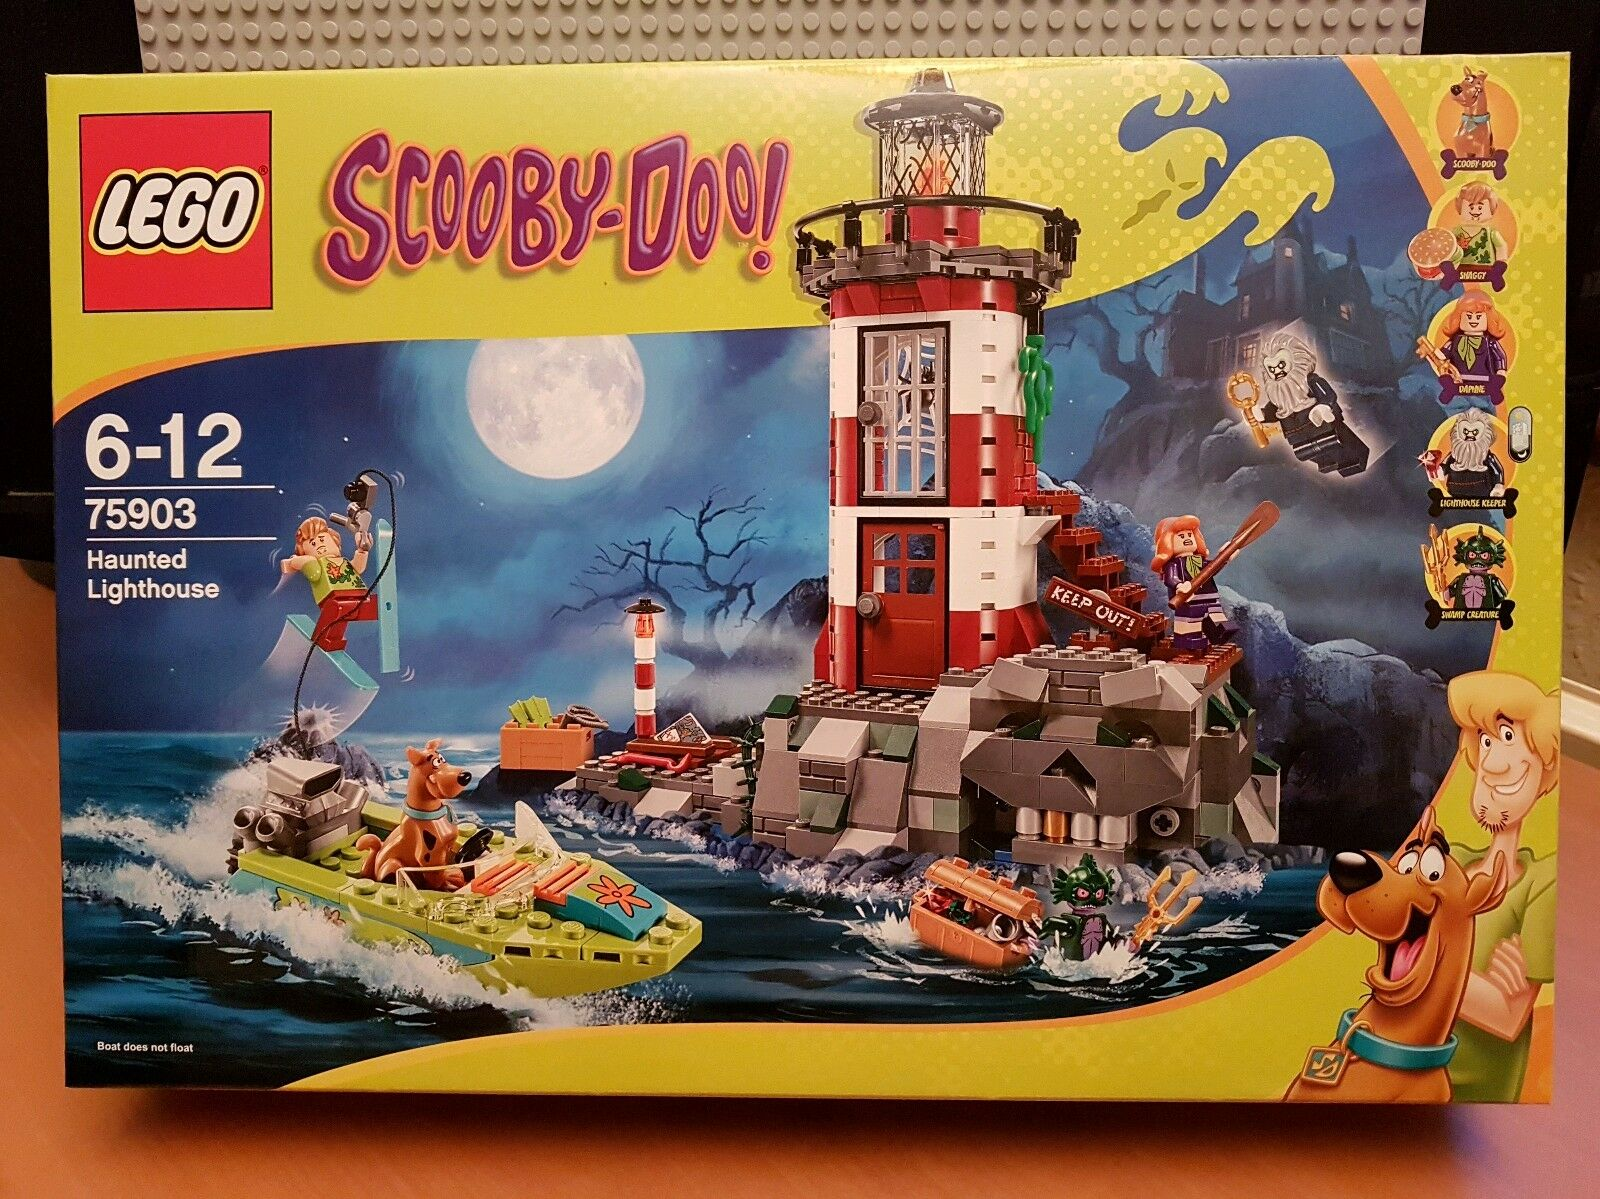 Lego SCOOBY DOO 75903 Haunted Lighthouse New ✔ Scellé ✔ Fast p&p ✔ Joliment Emballé ✔✔